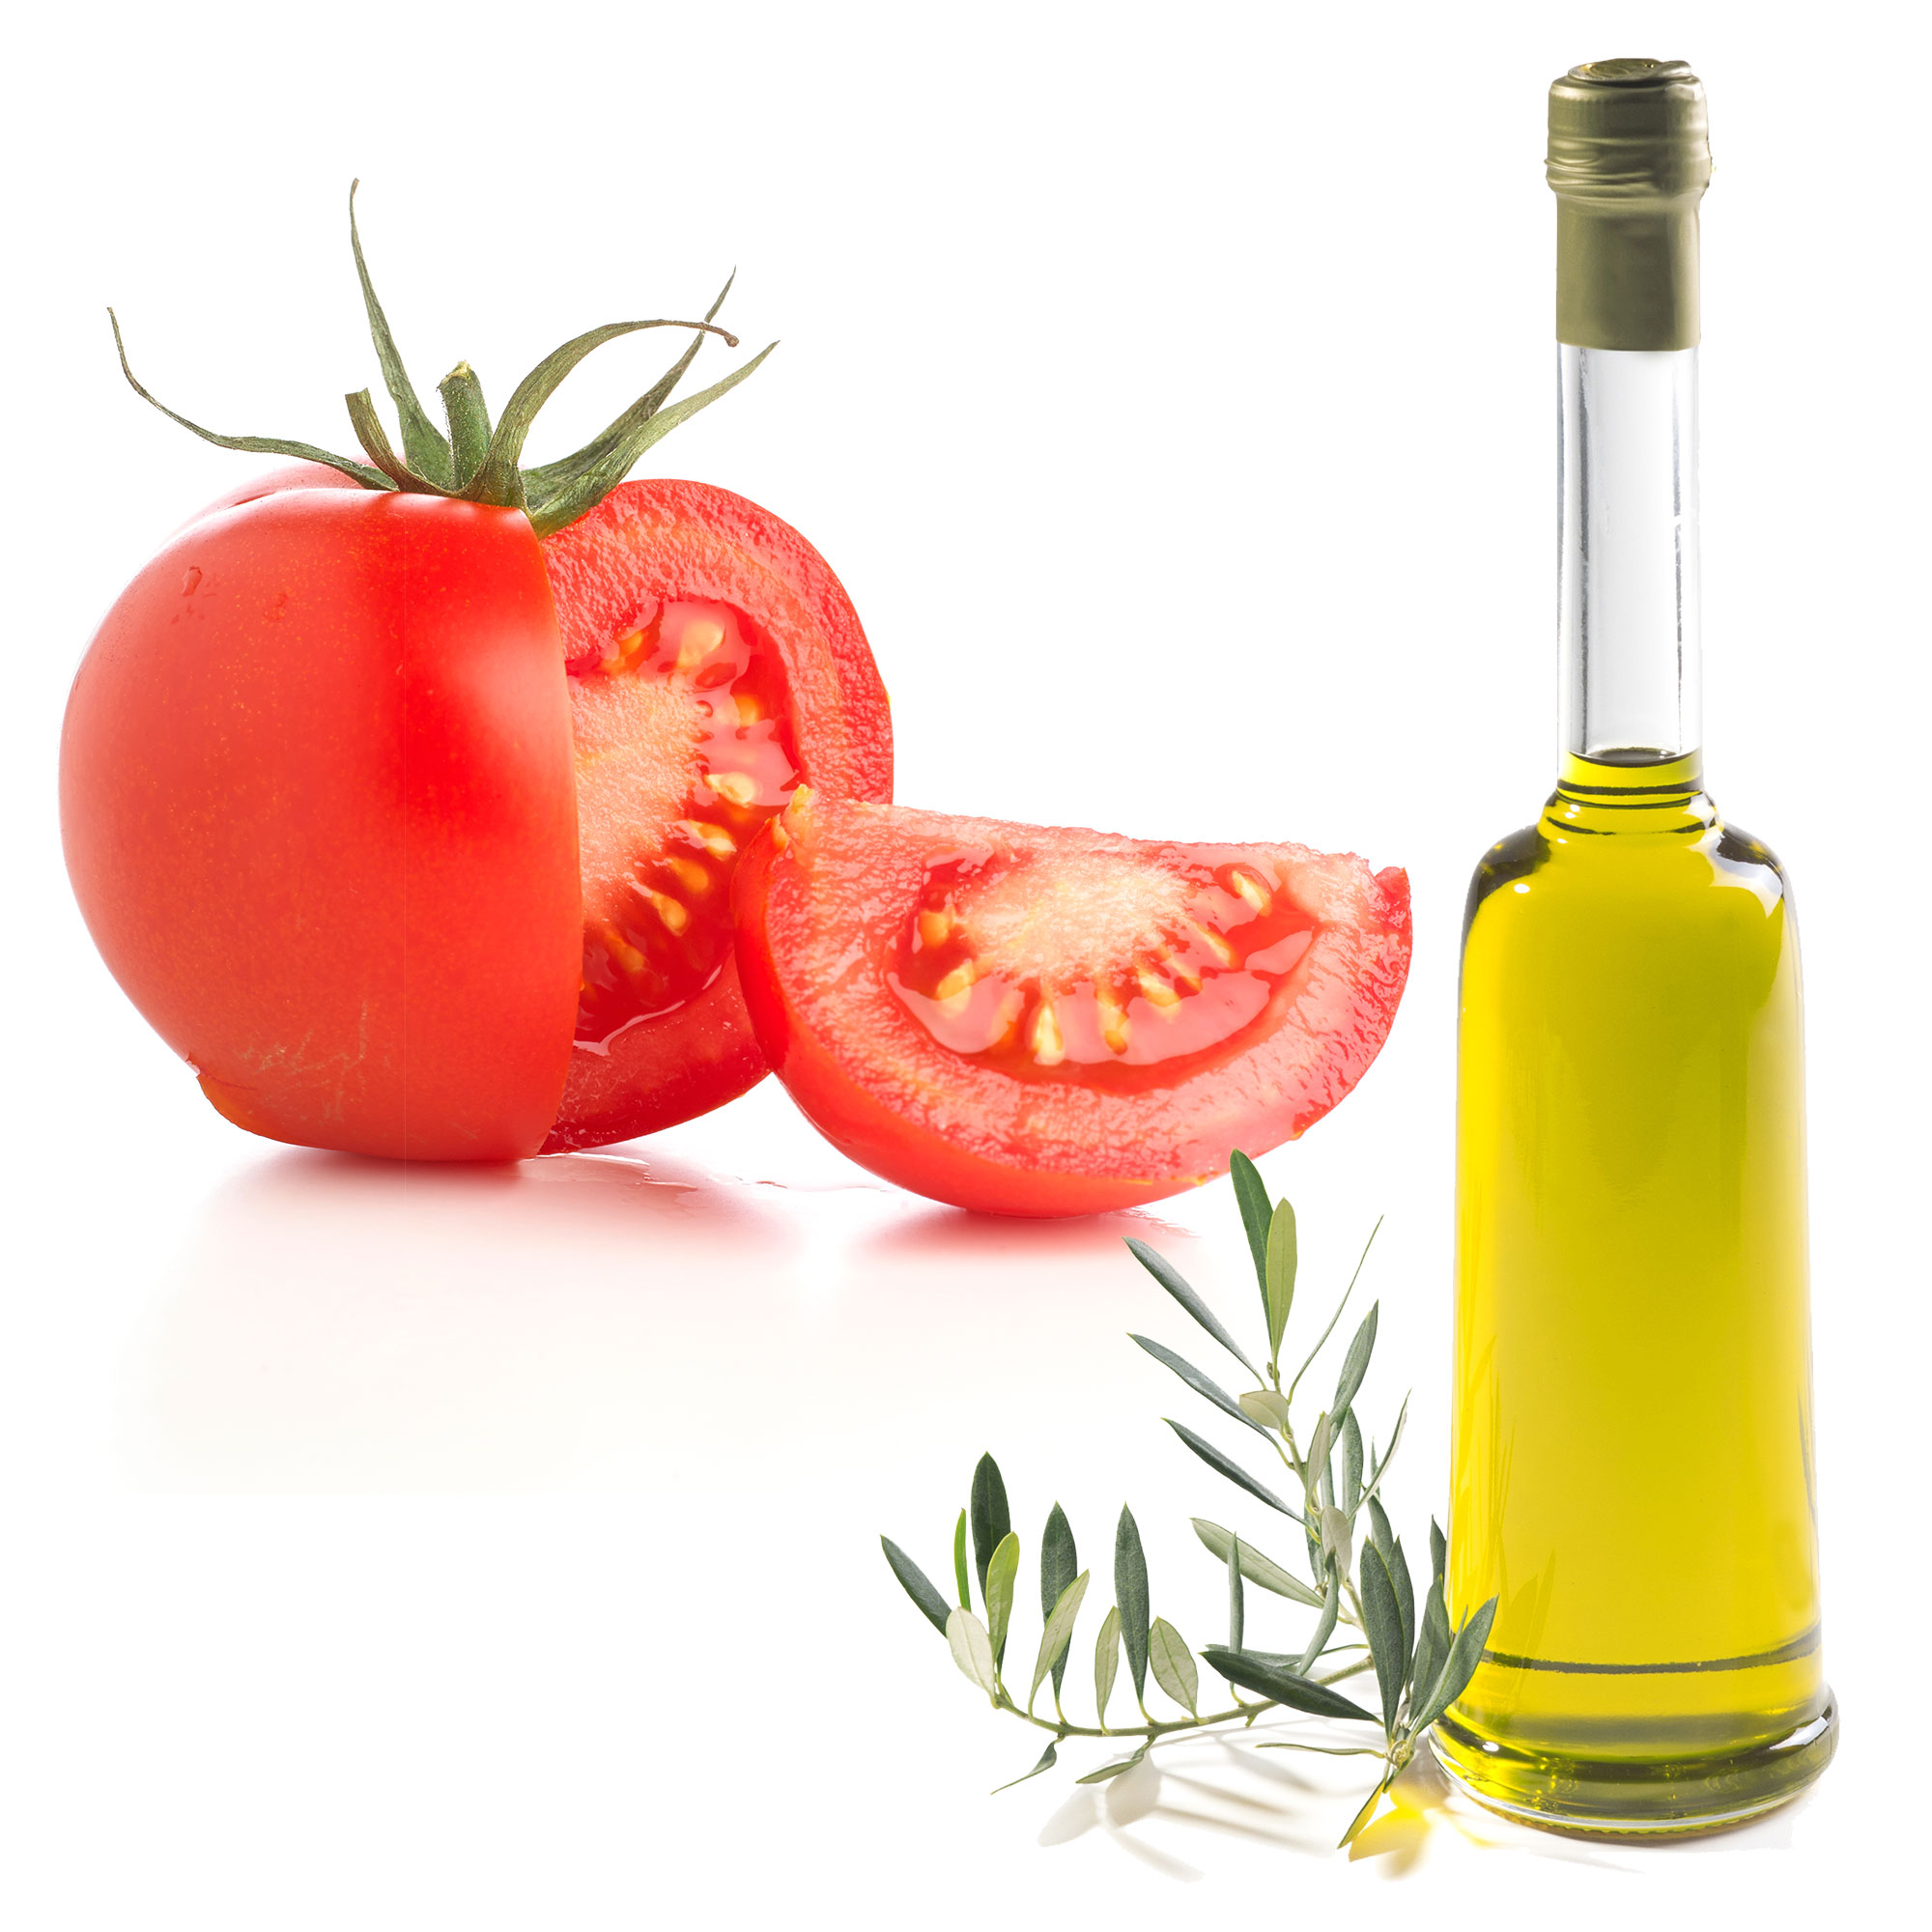 tomatoes-olive-oil